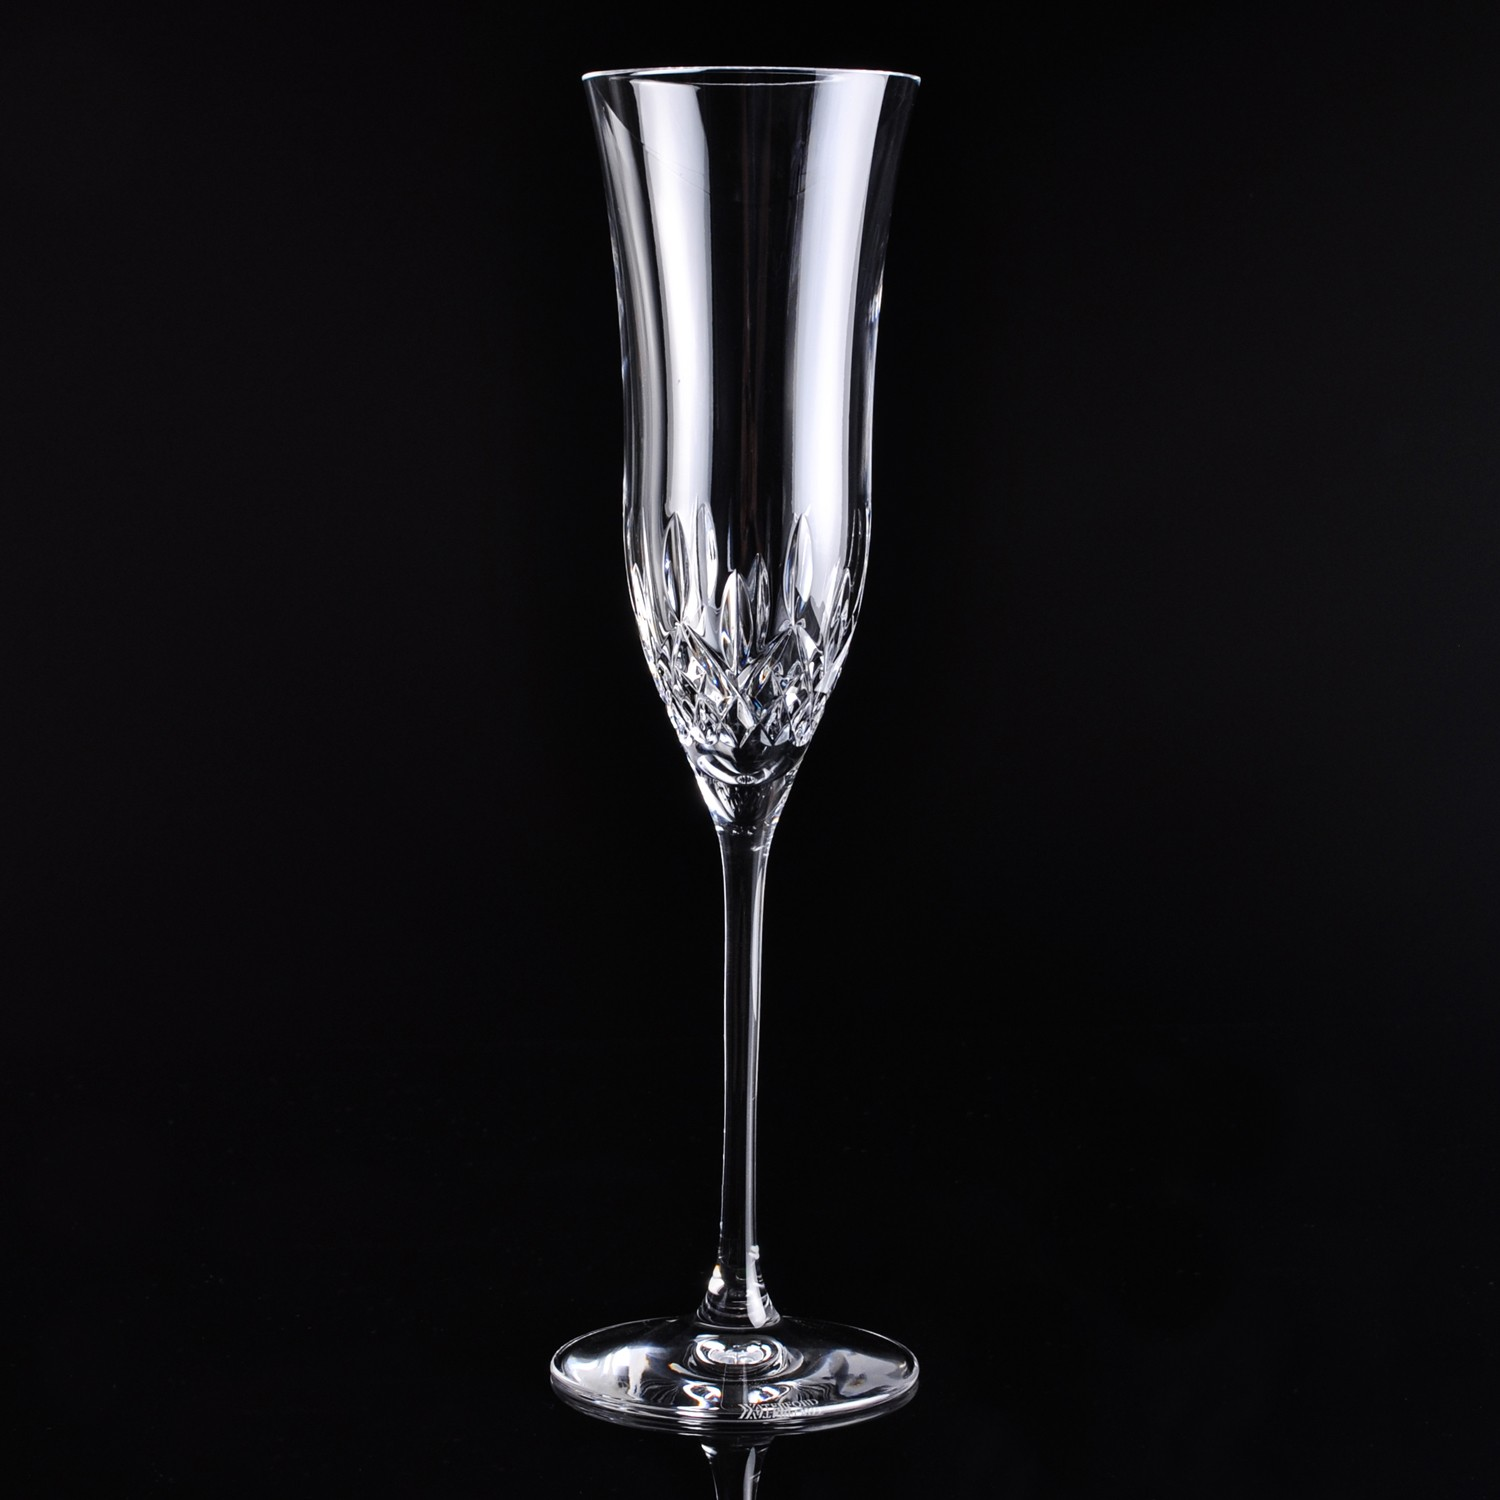 Classy waterford lismore with lismore goblet design glass waterford lismore